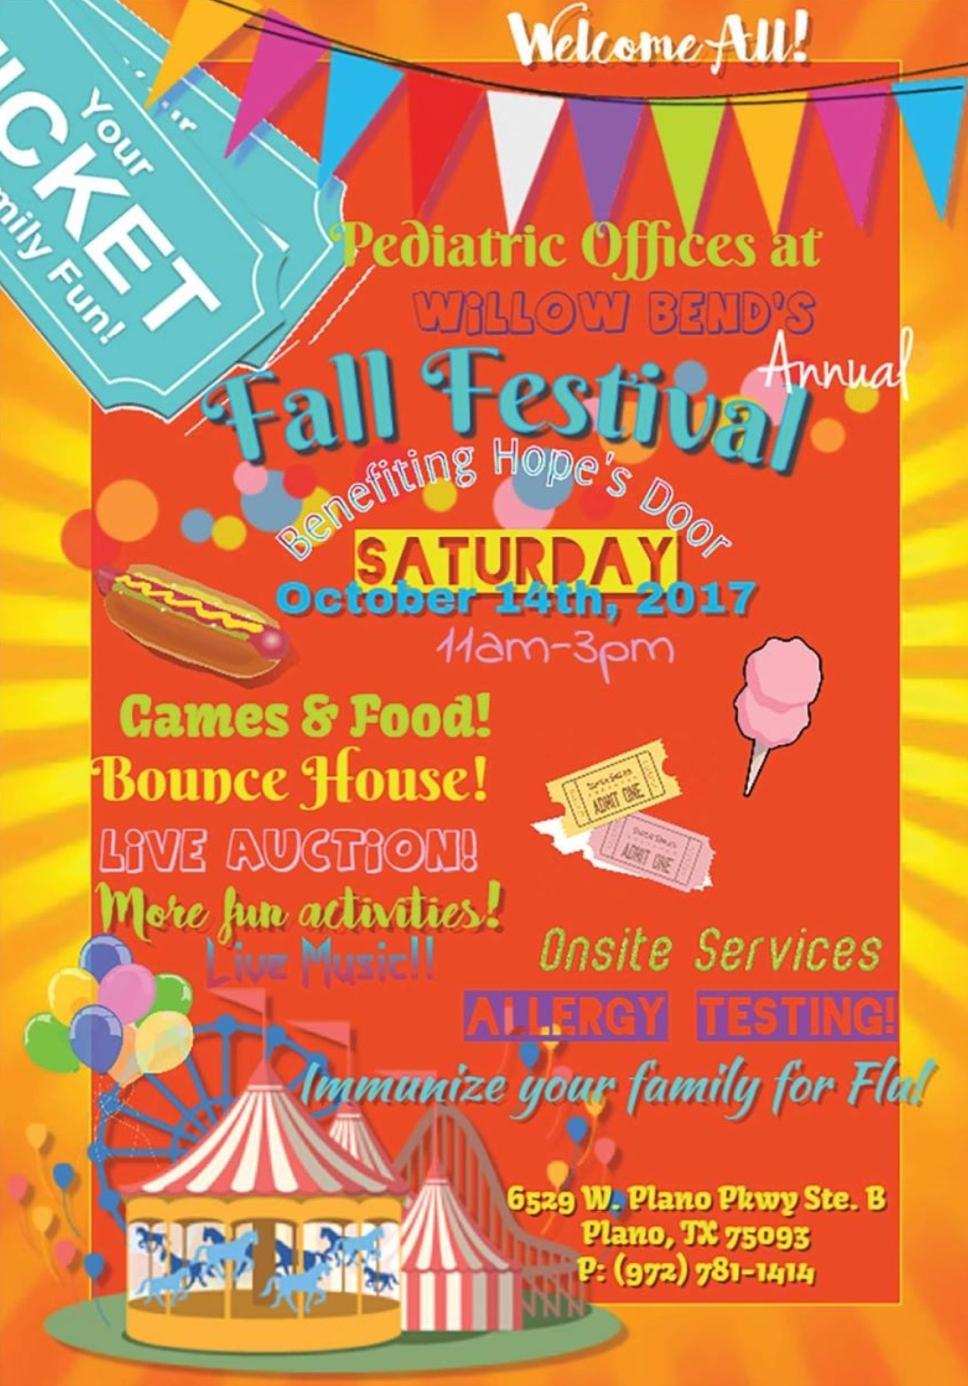 Plano Birthplace will be there passing out goodies to the children!